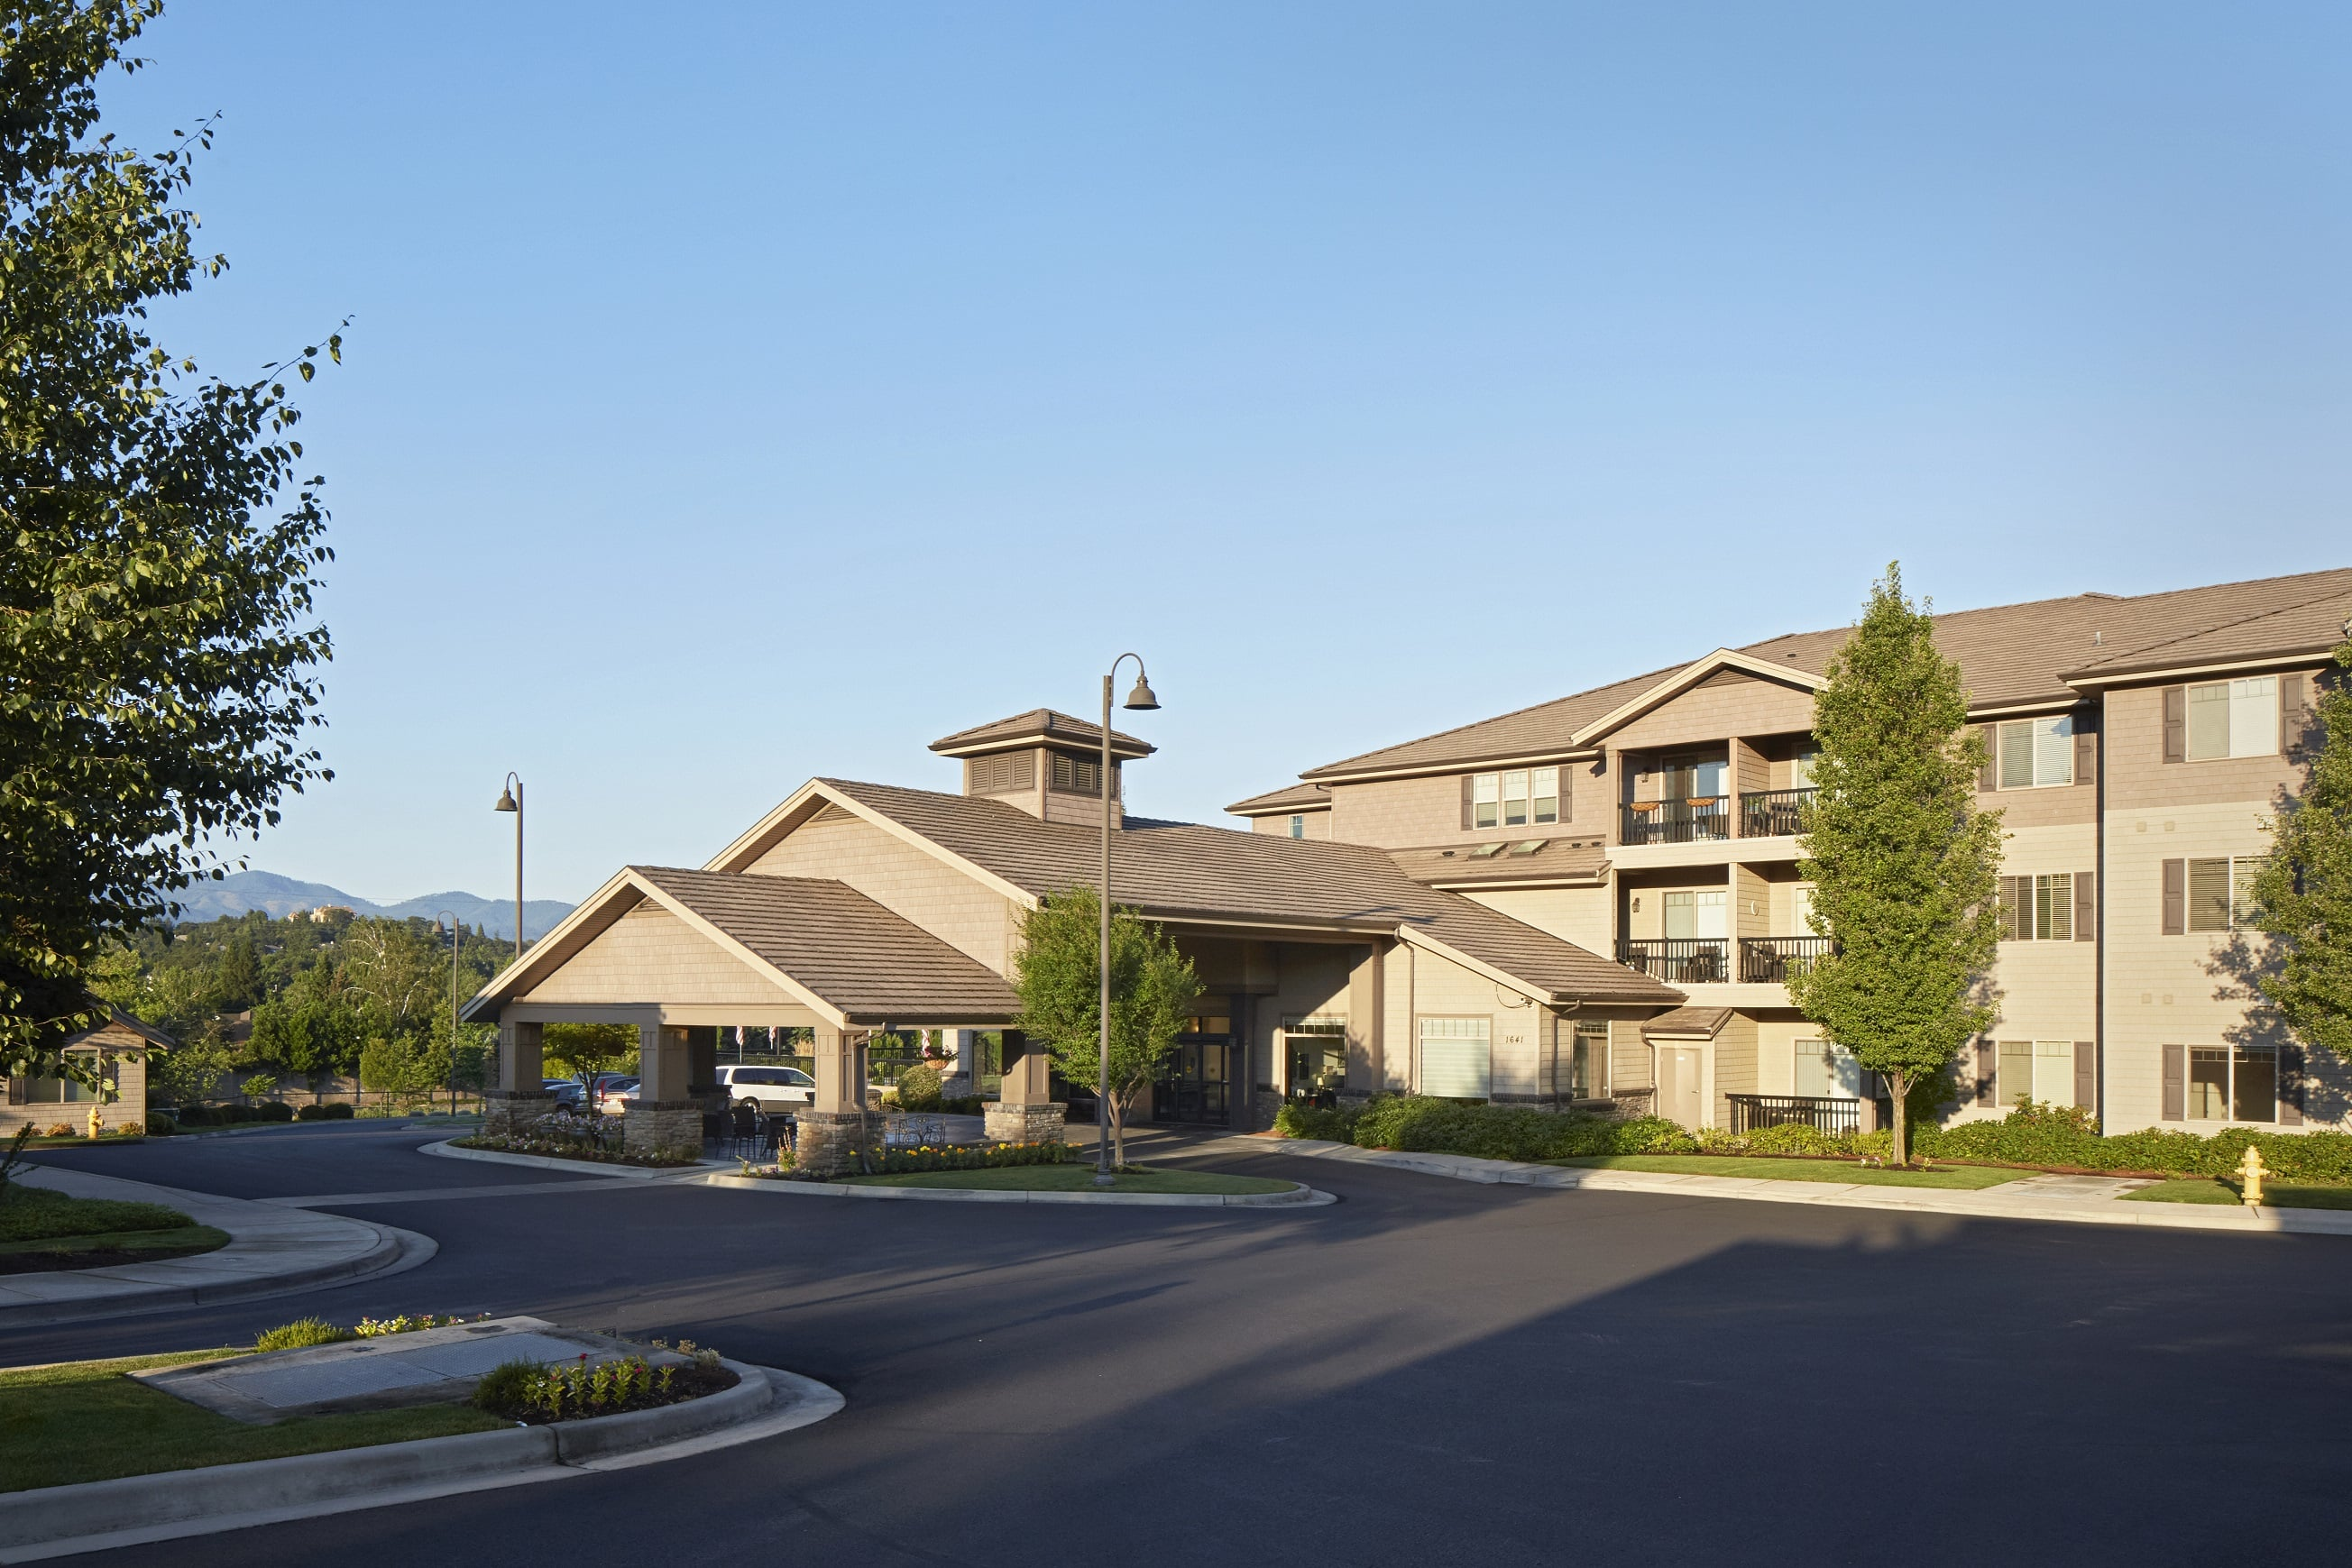 Exterior of our senior living facility in Medford, OR